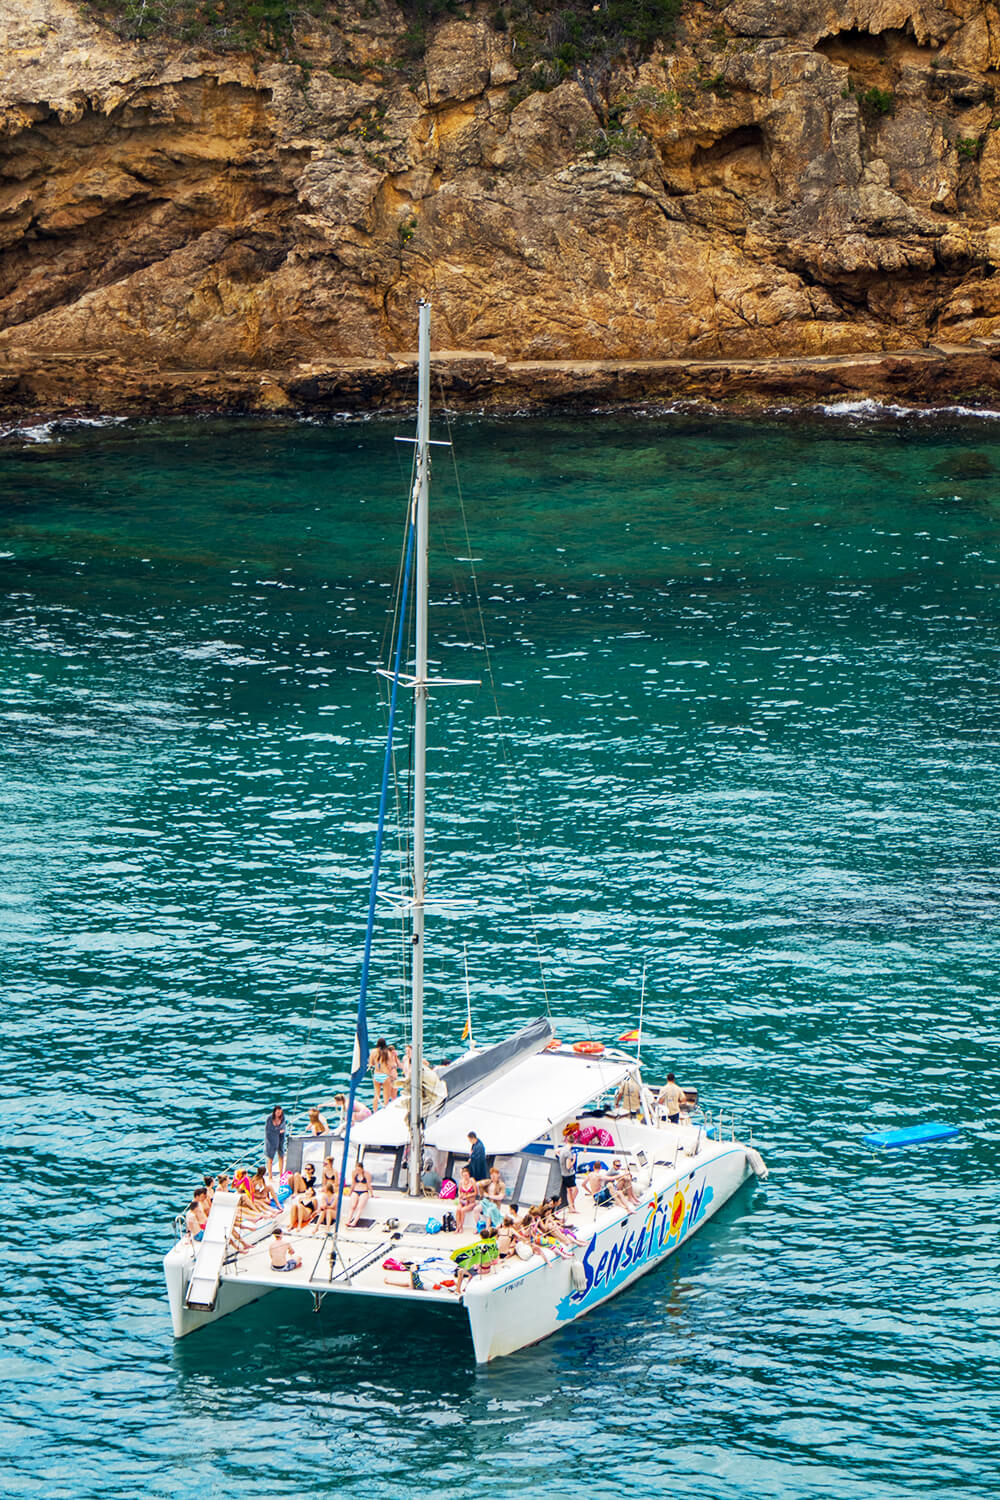 catamaran-sensation-1-costa-brava-5